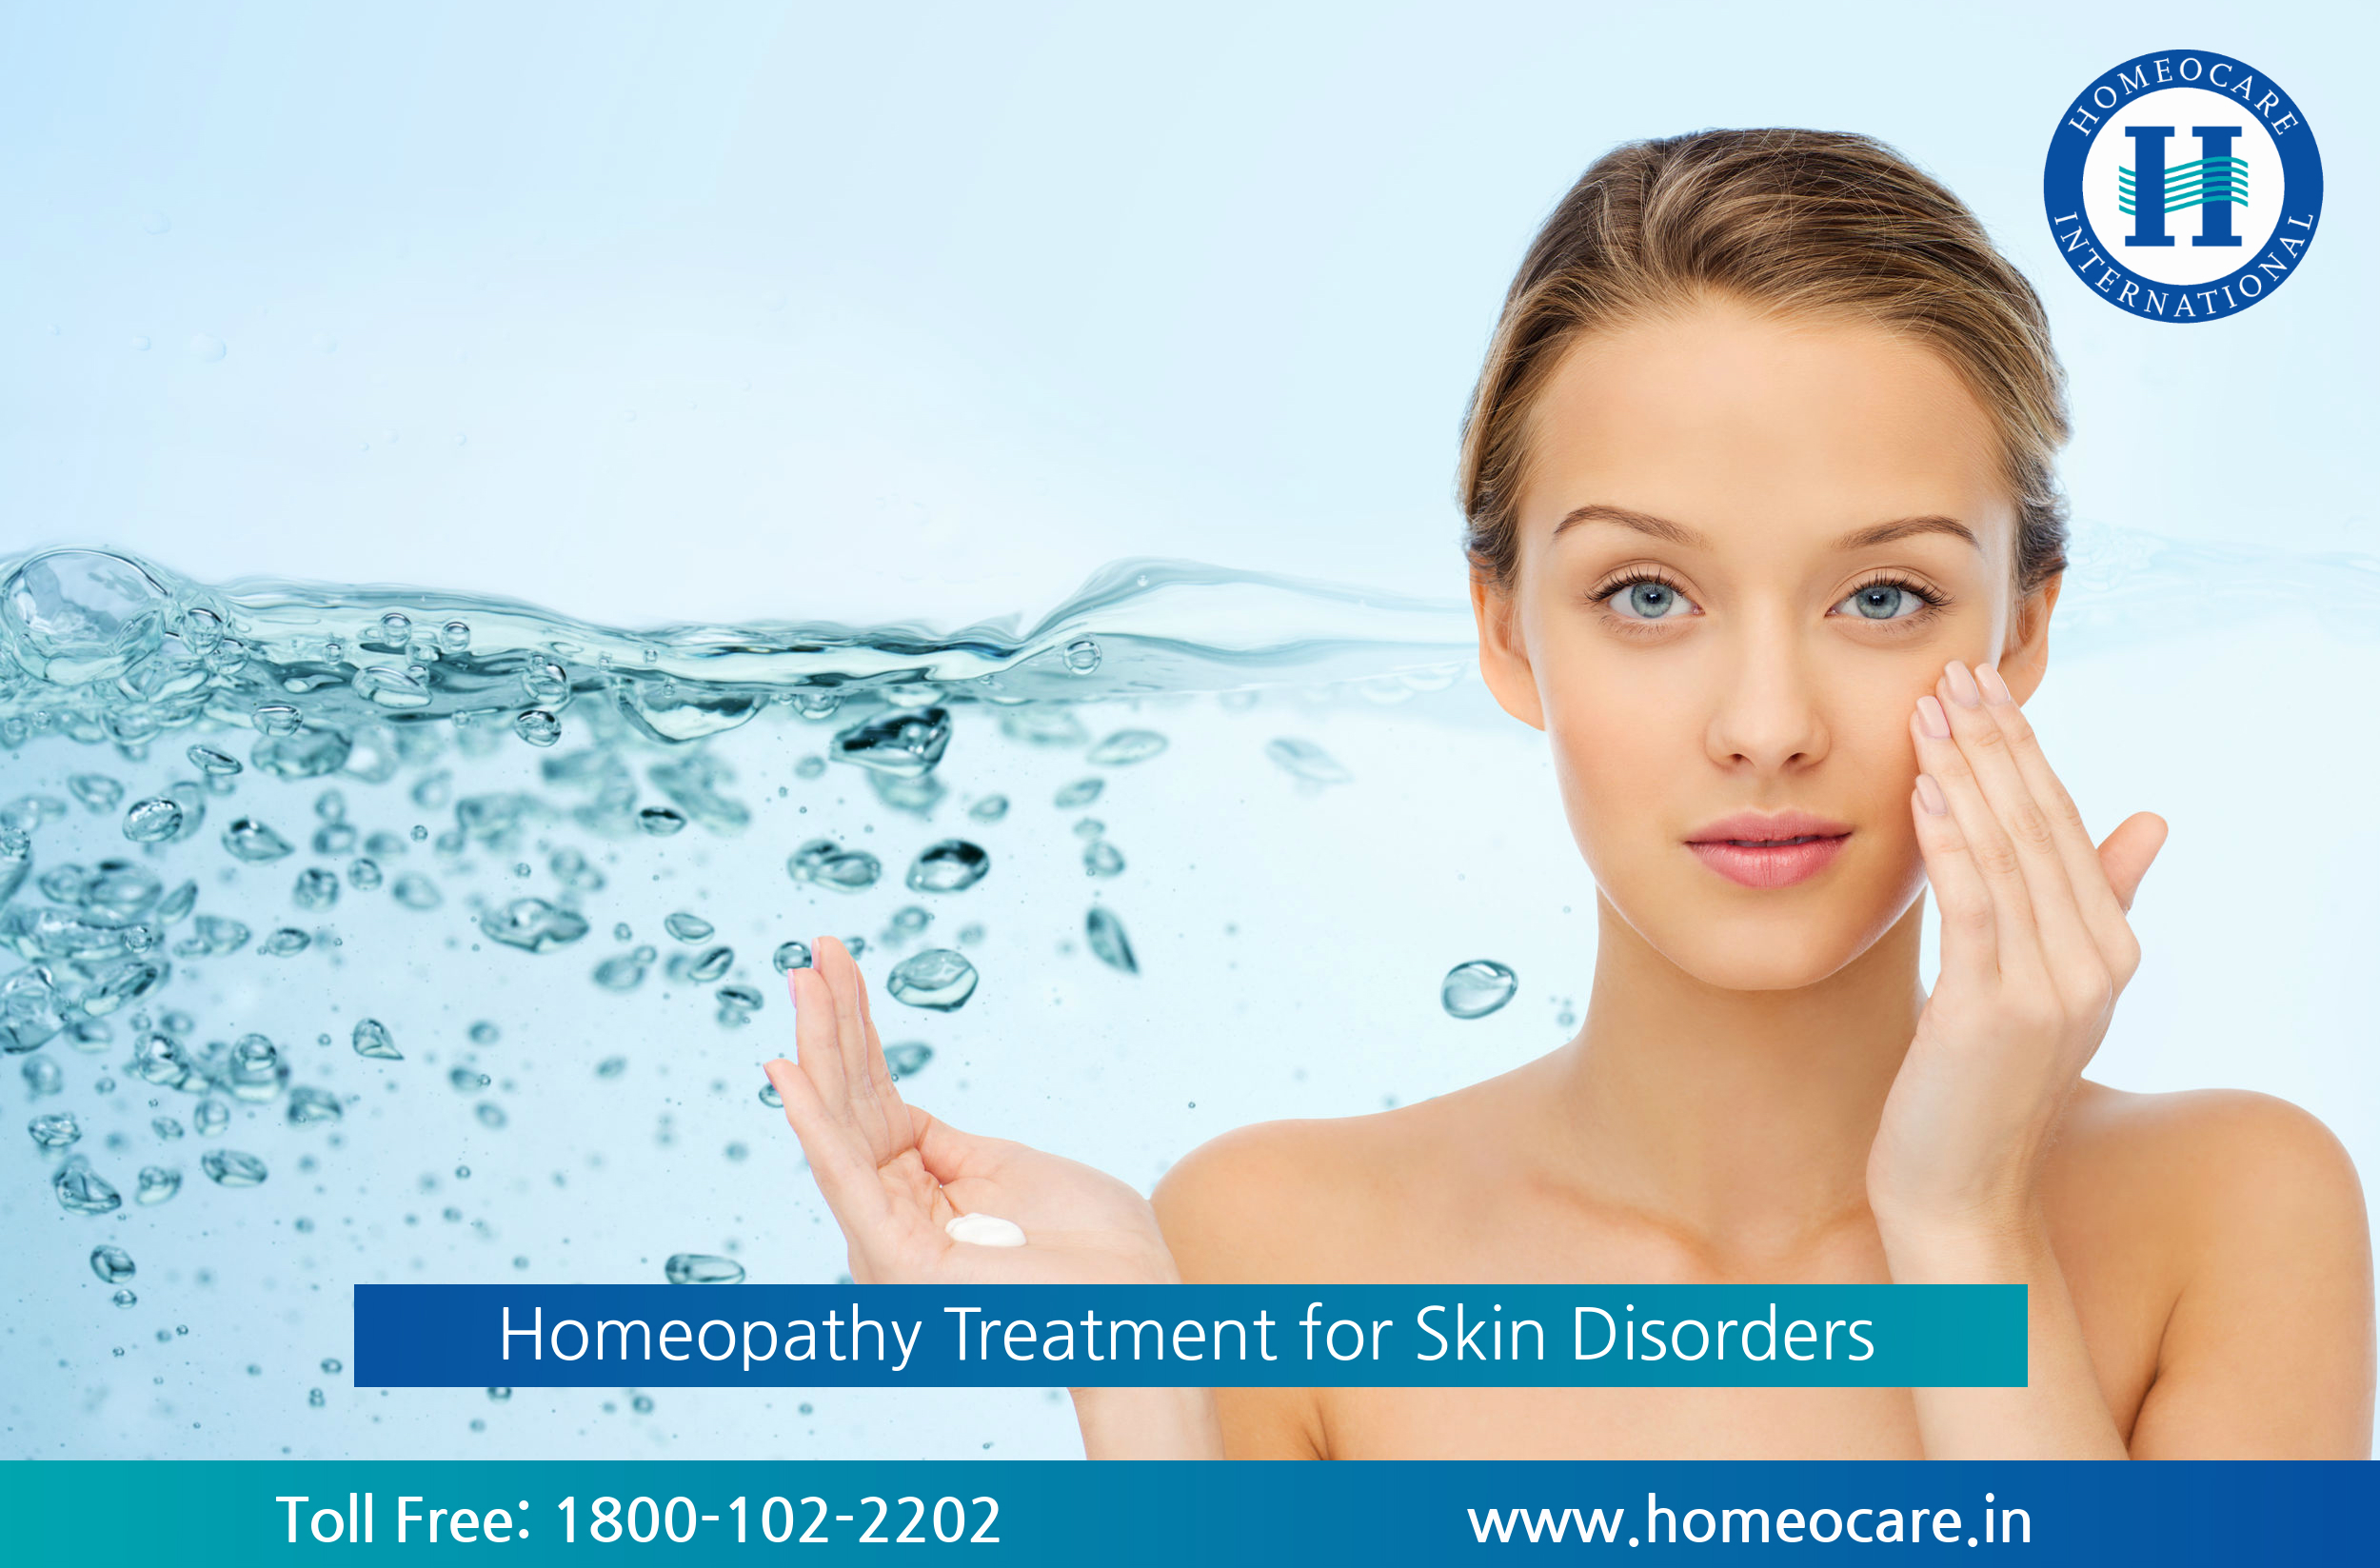 Homeopathic Treatment for Skin Disorders